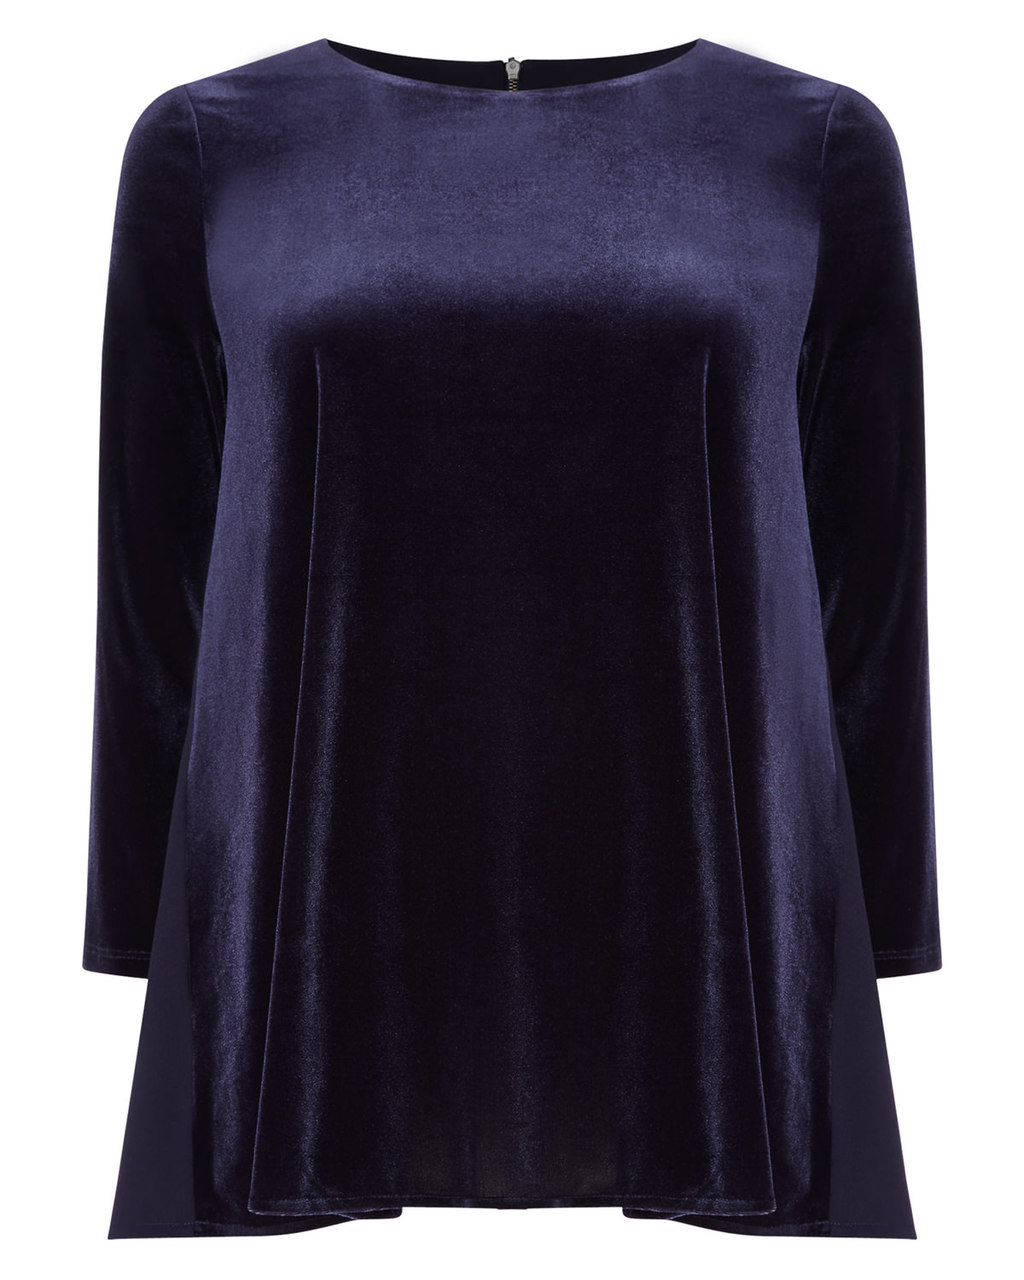 Delia Velvet Blouse - pattern: plain; style: blouse; predominant colour: navy; occasions: casual, evening; length: standard; fibres: polyester/polyamide - stretch; fit: loose; neckline: crew; sleeve length: long sleeve; sleeve style: standard; pattern type: fabric; texture group: velvet/fabrics with pile; season: a/w 2015; wardrobe: highlight